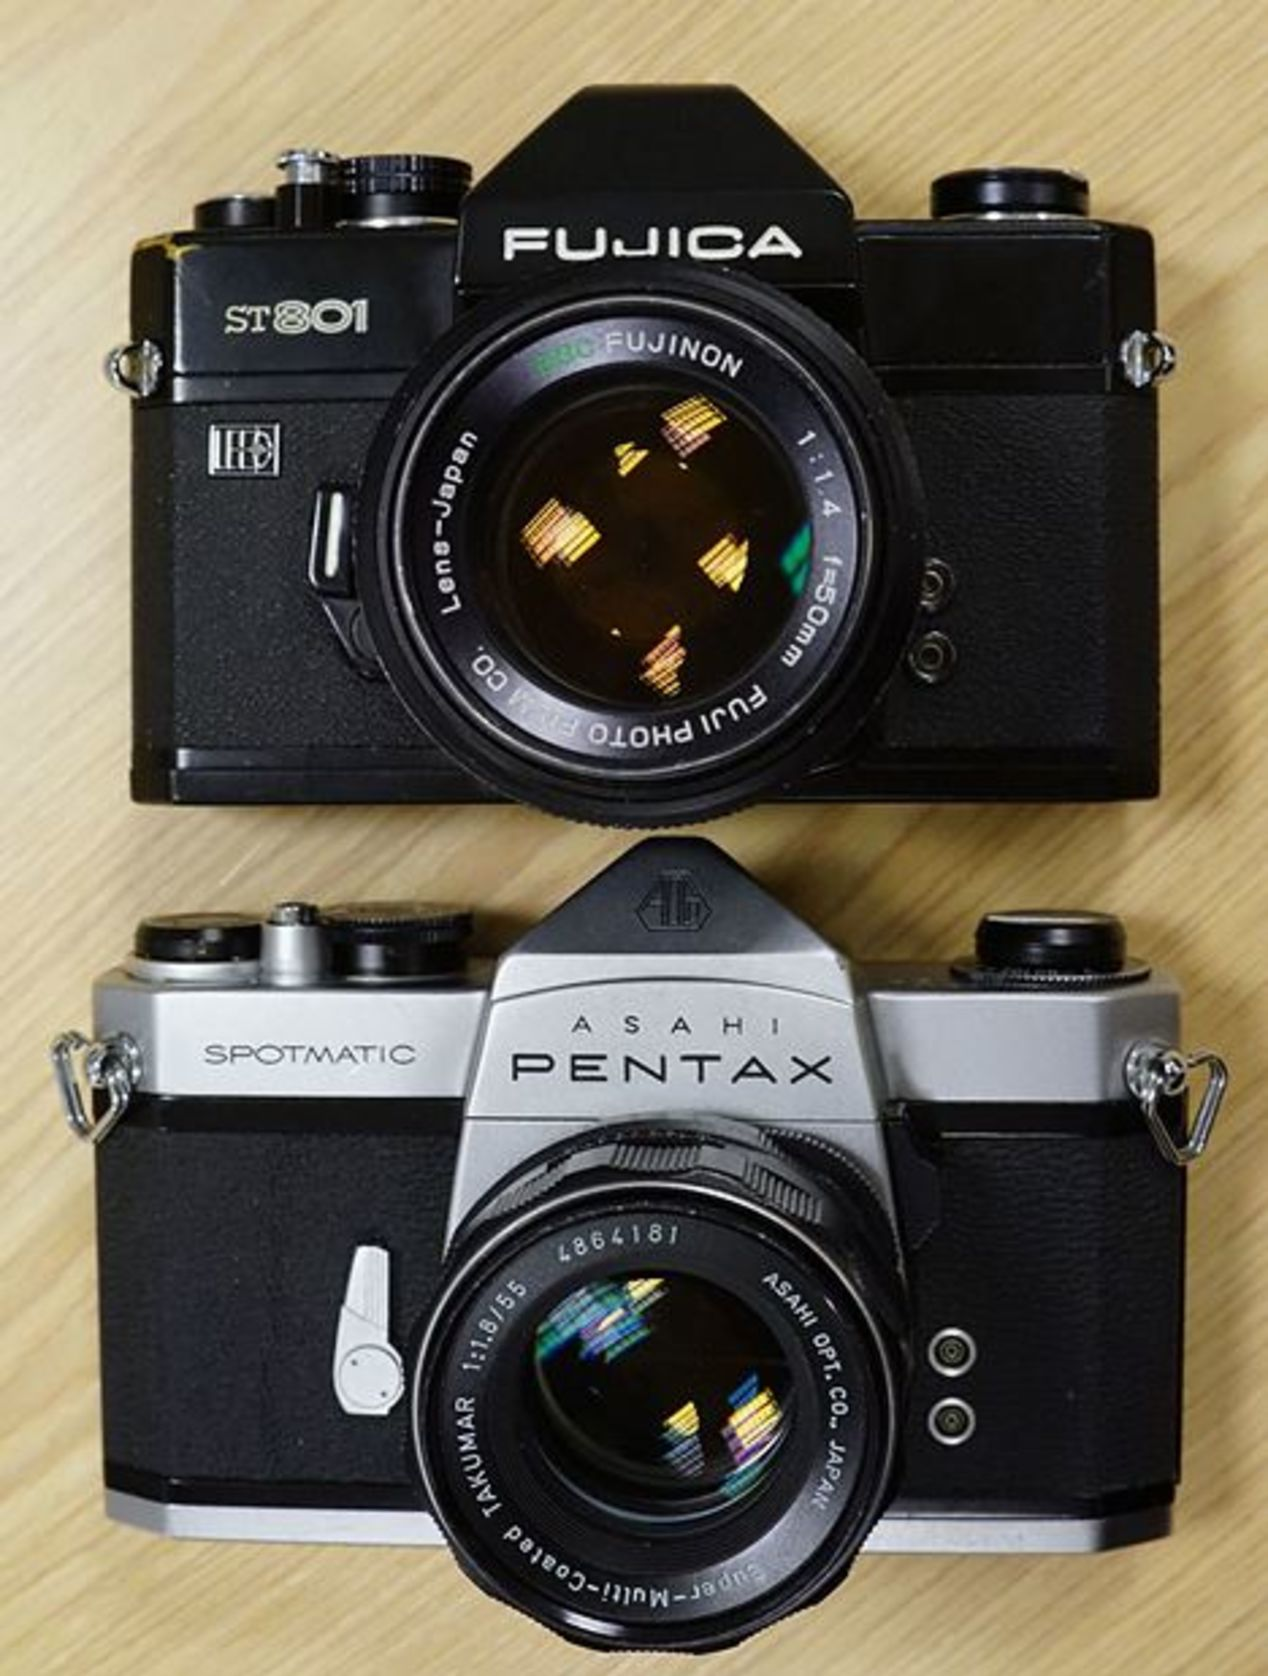 Fujica ST-801 ~$50 and Pentax Spotmatic F ~$50.